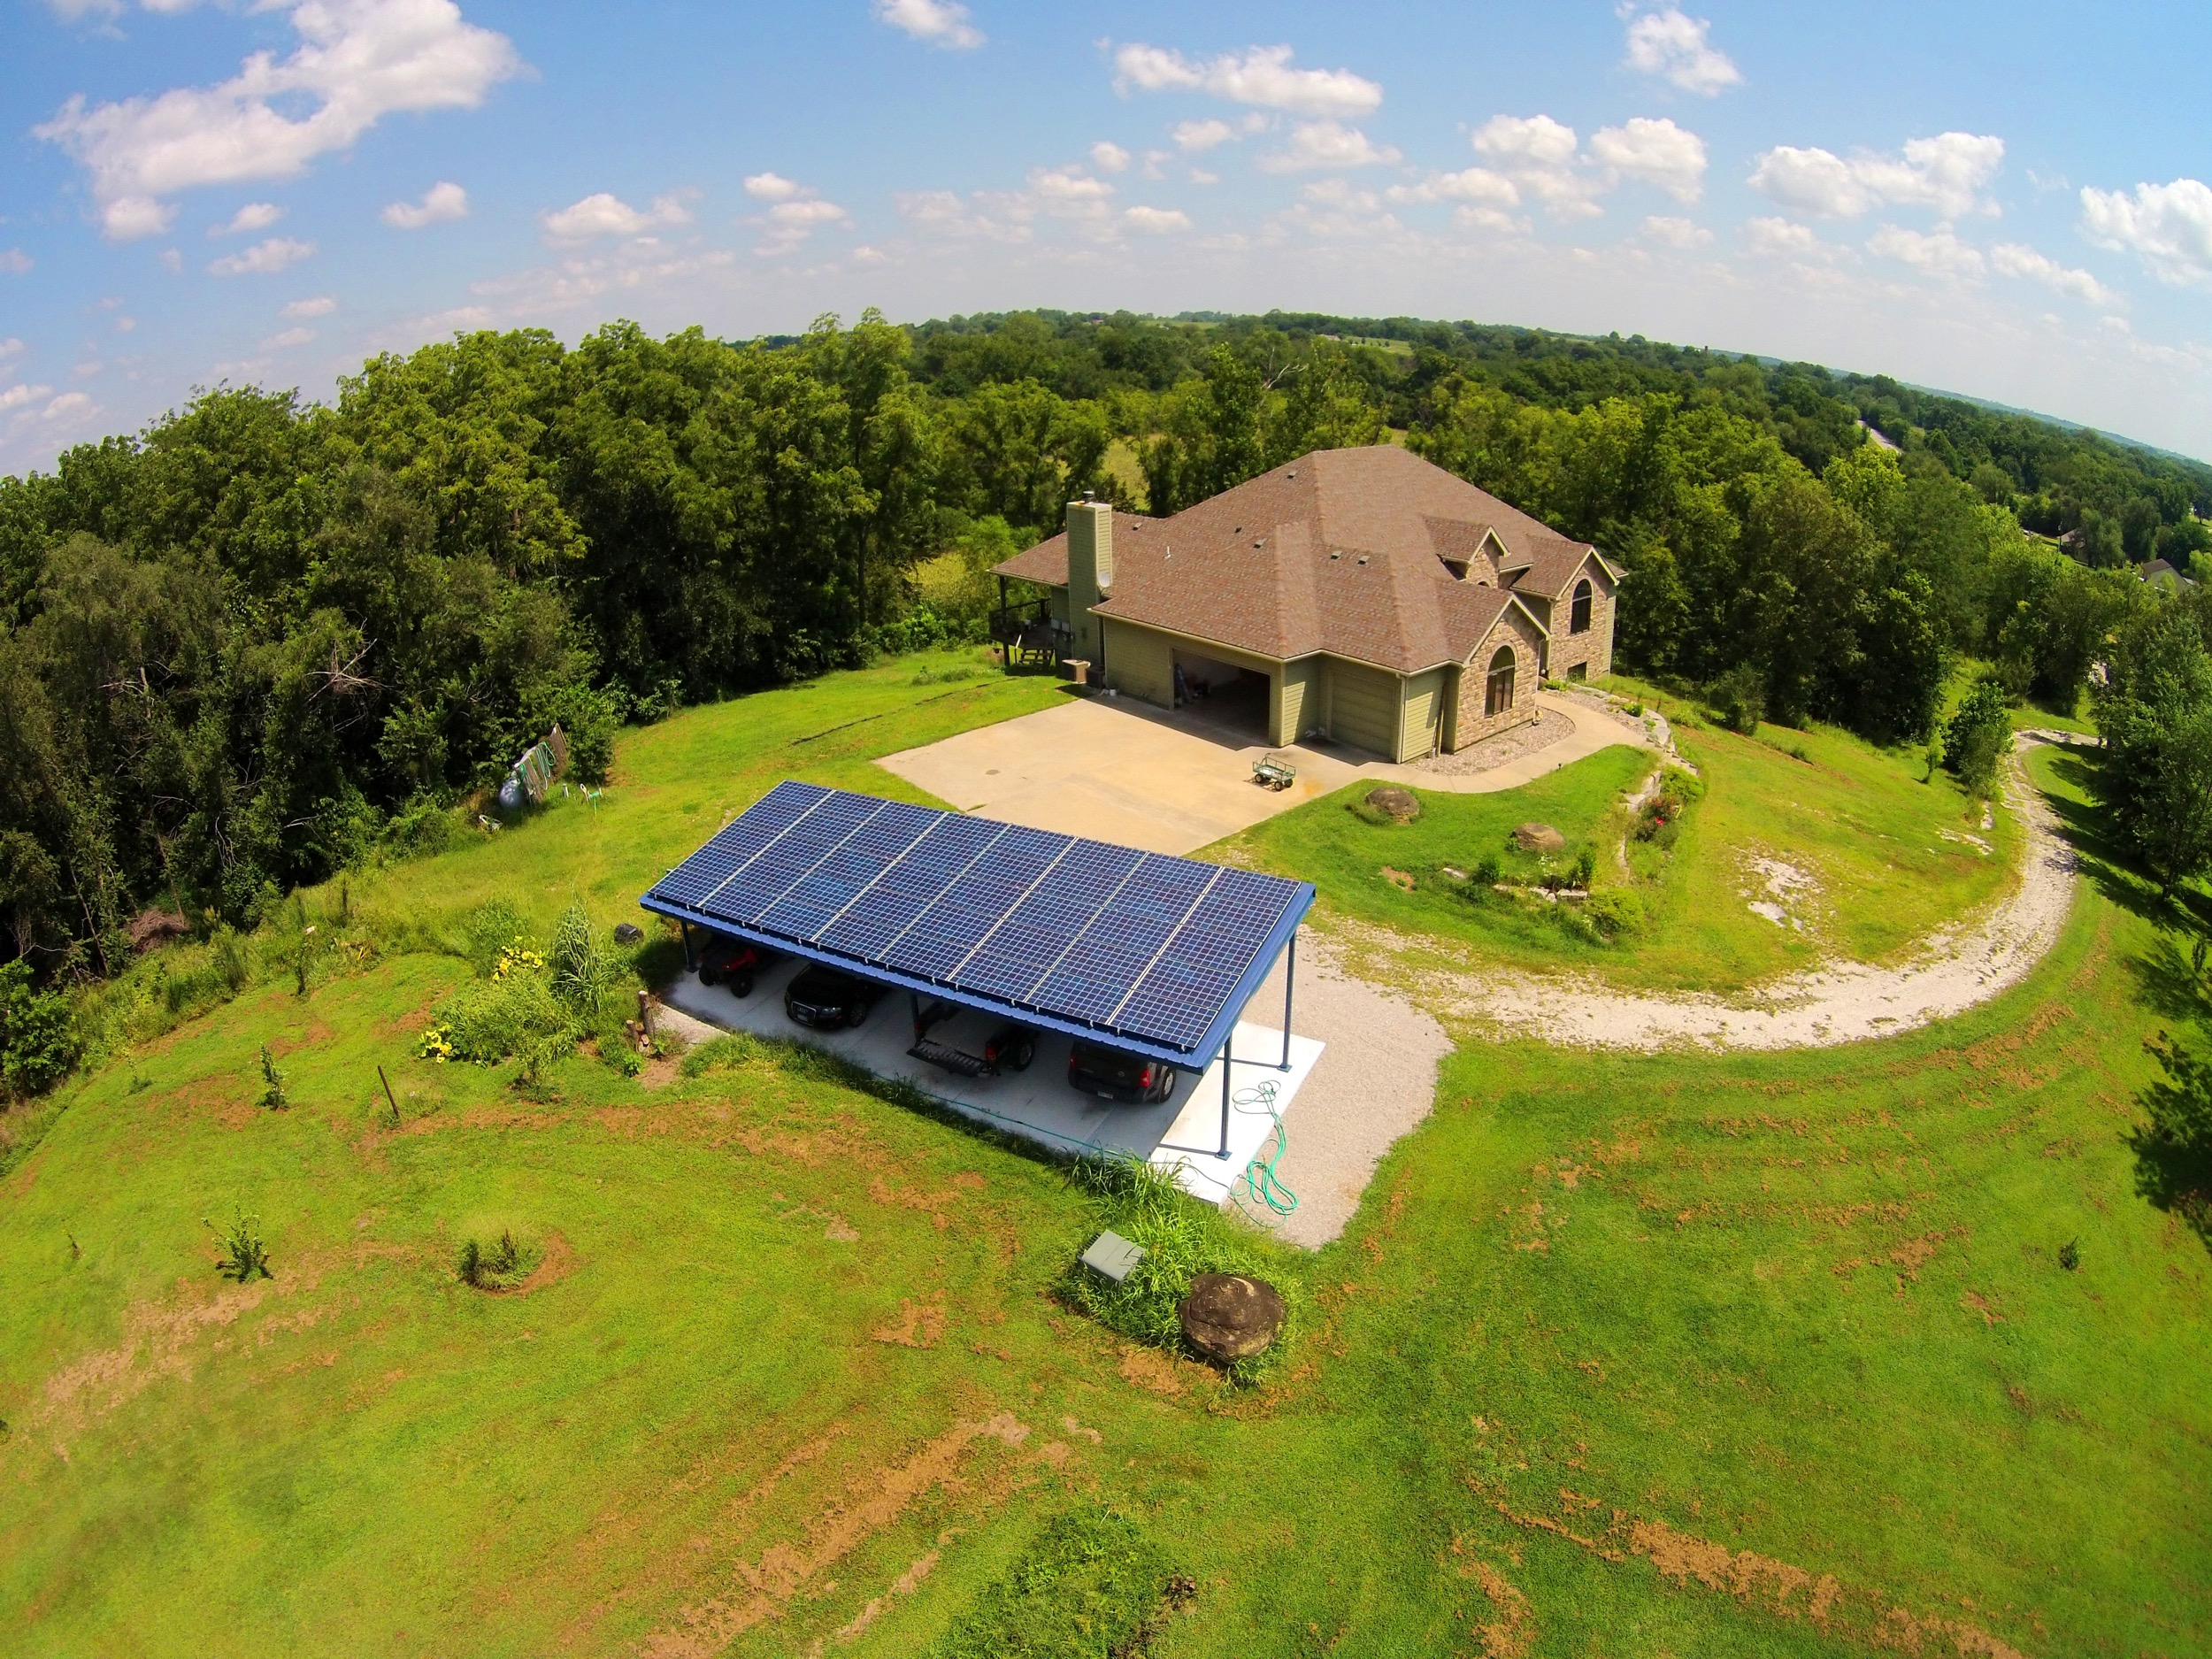 A residential solar array installed on a car port © 2015 Cromwell Environmental